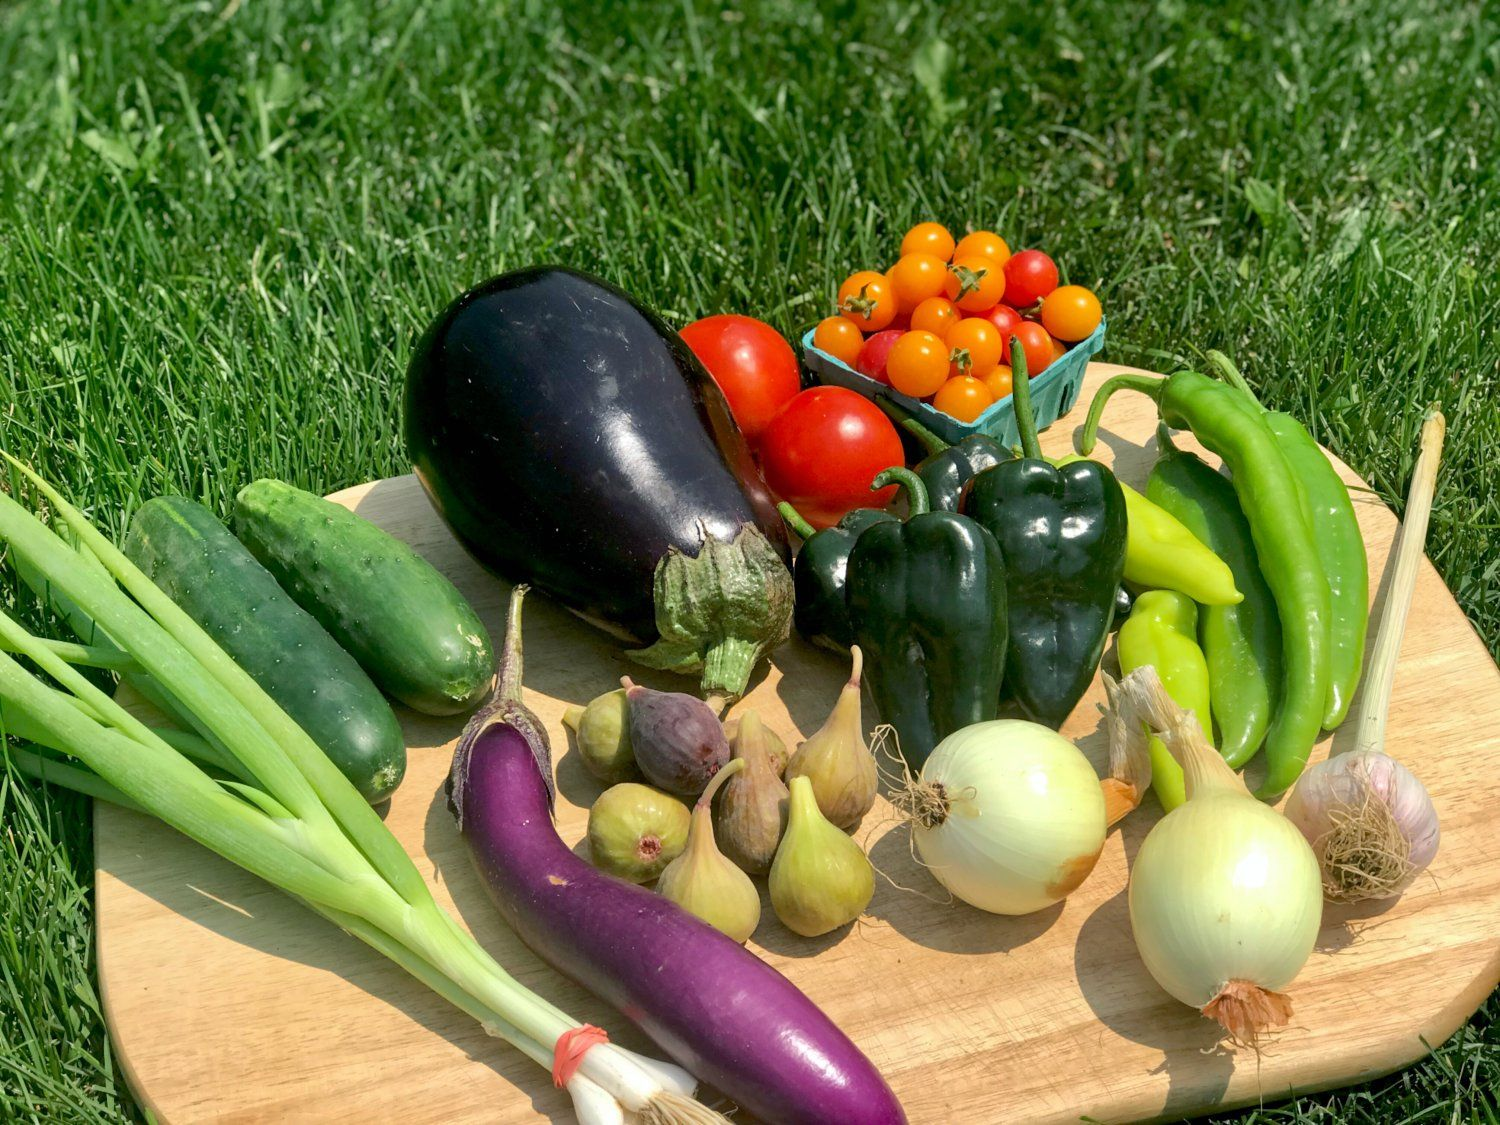 Previous Happening: Farm Happenings for August 6, 2021